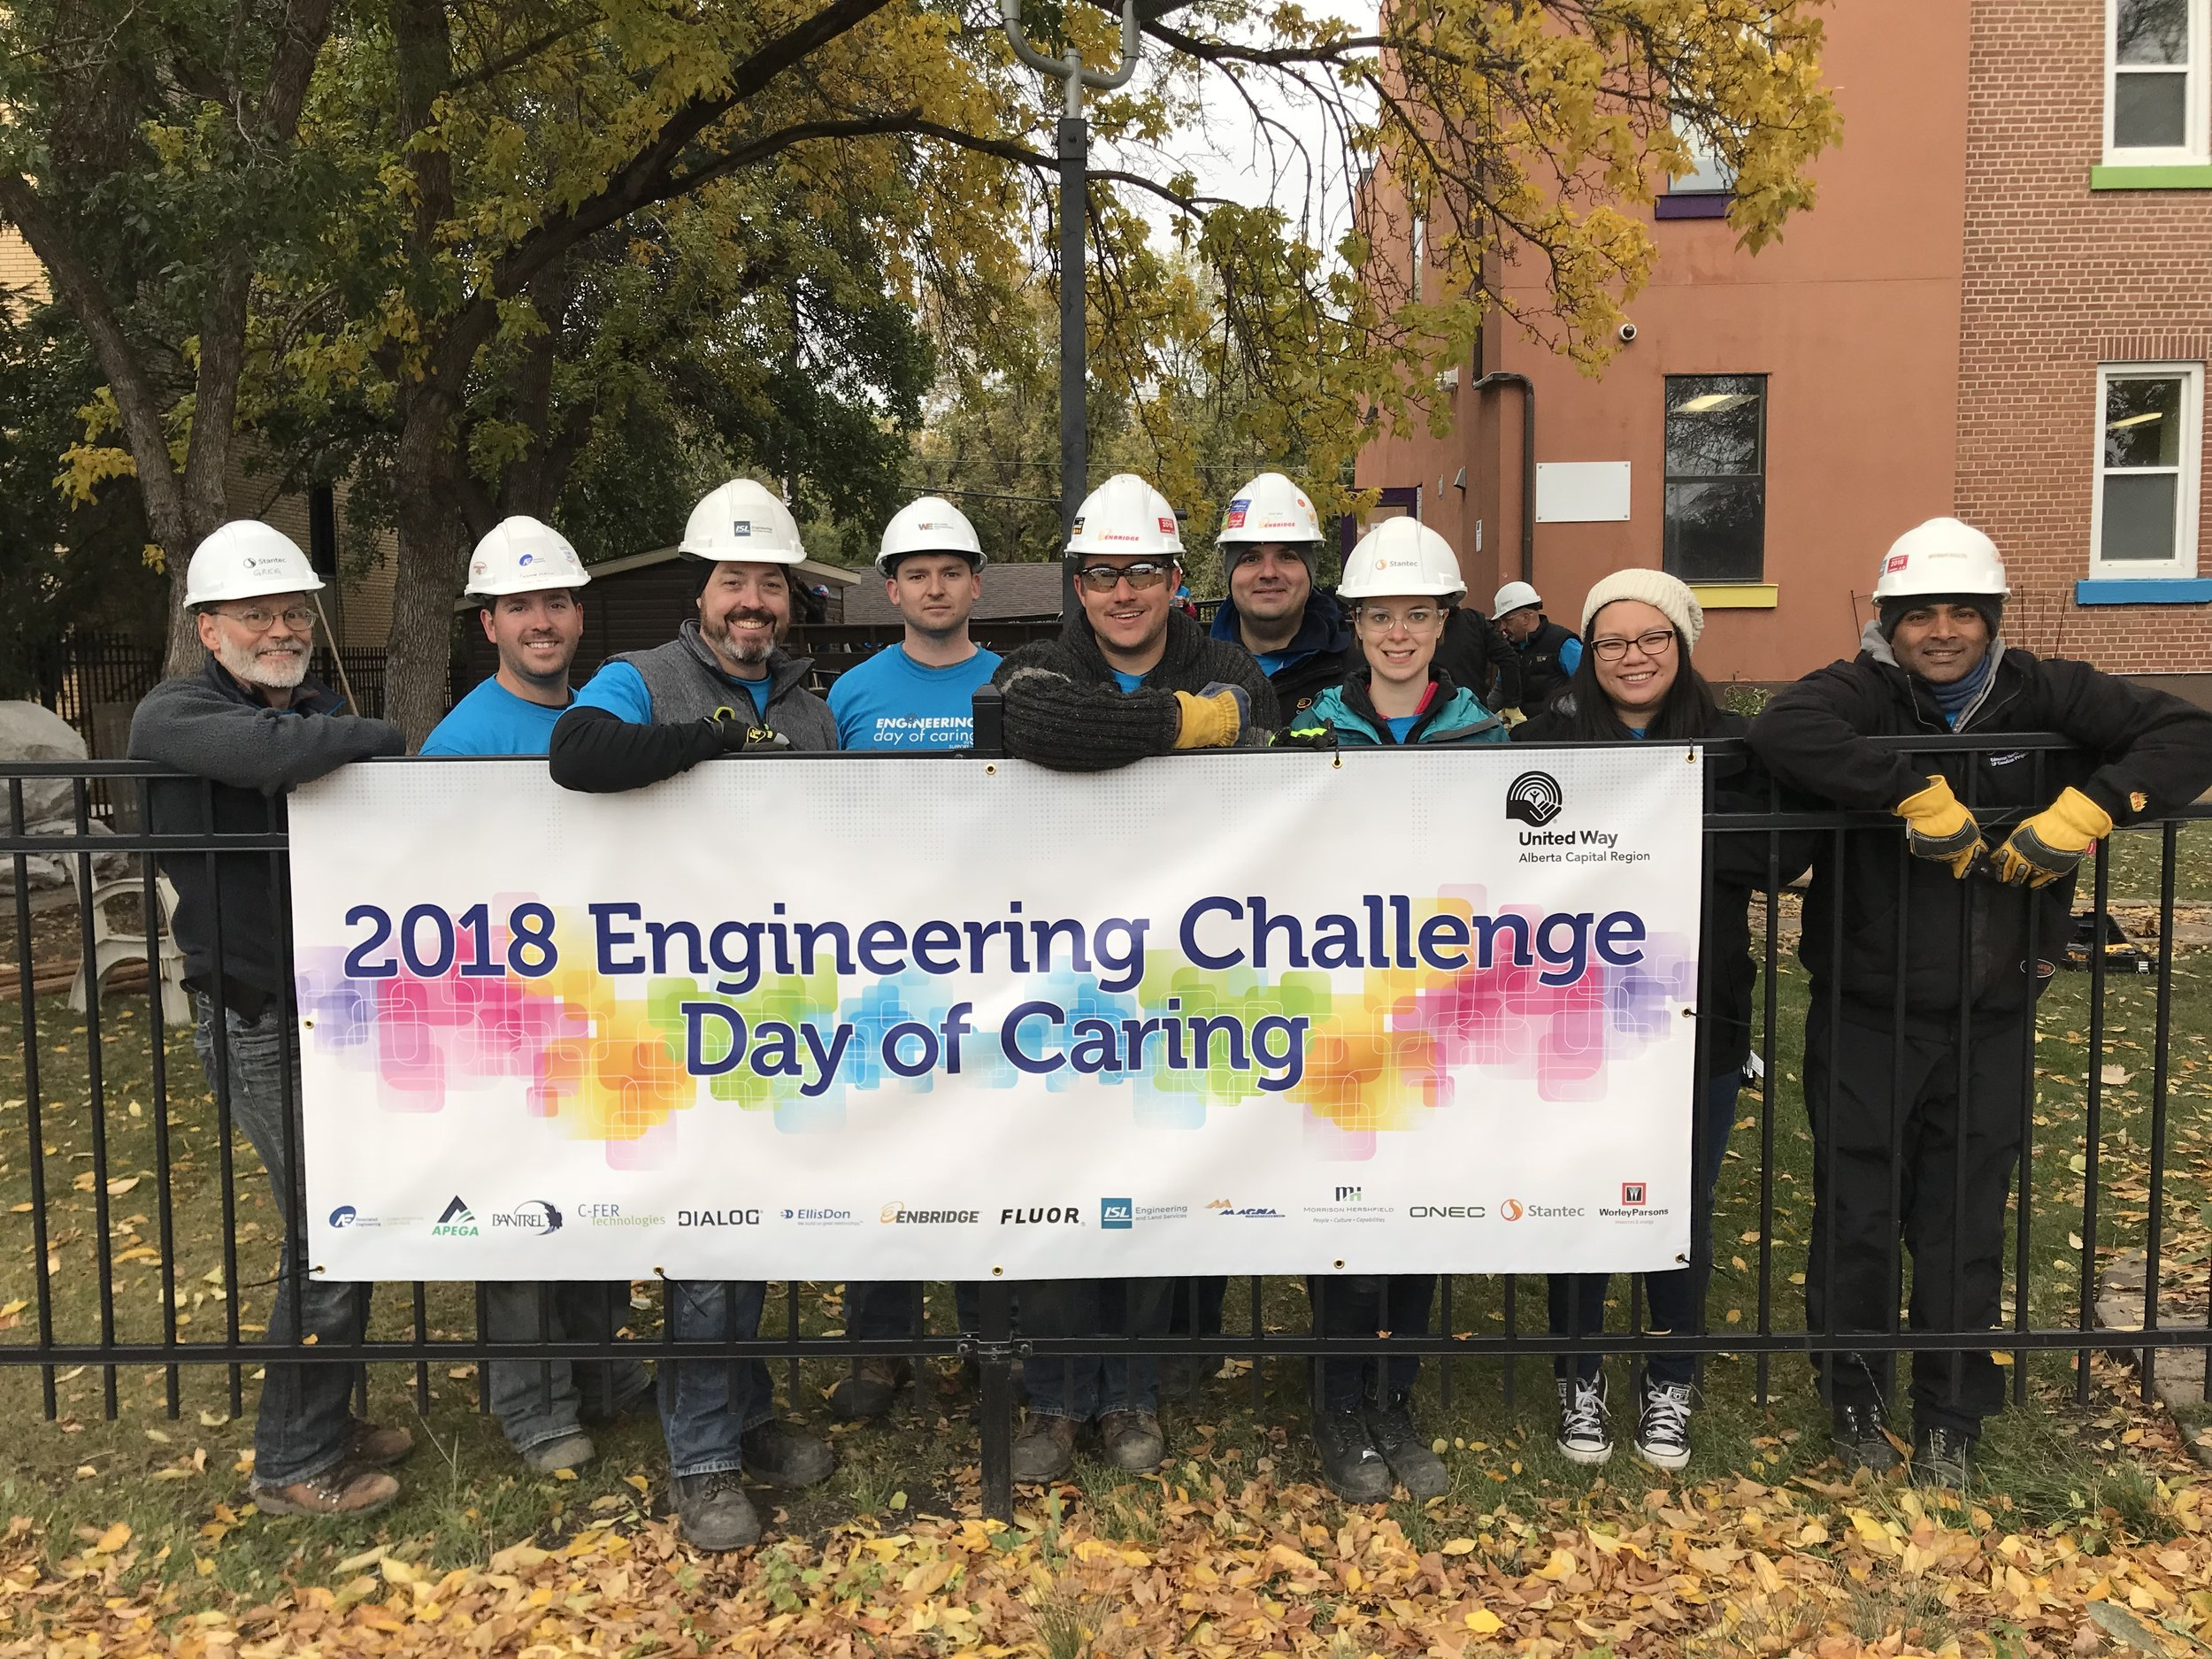 Volunteers at Engineering Challenge Day of Caring at Youth Empowerment Support Services